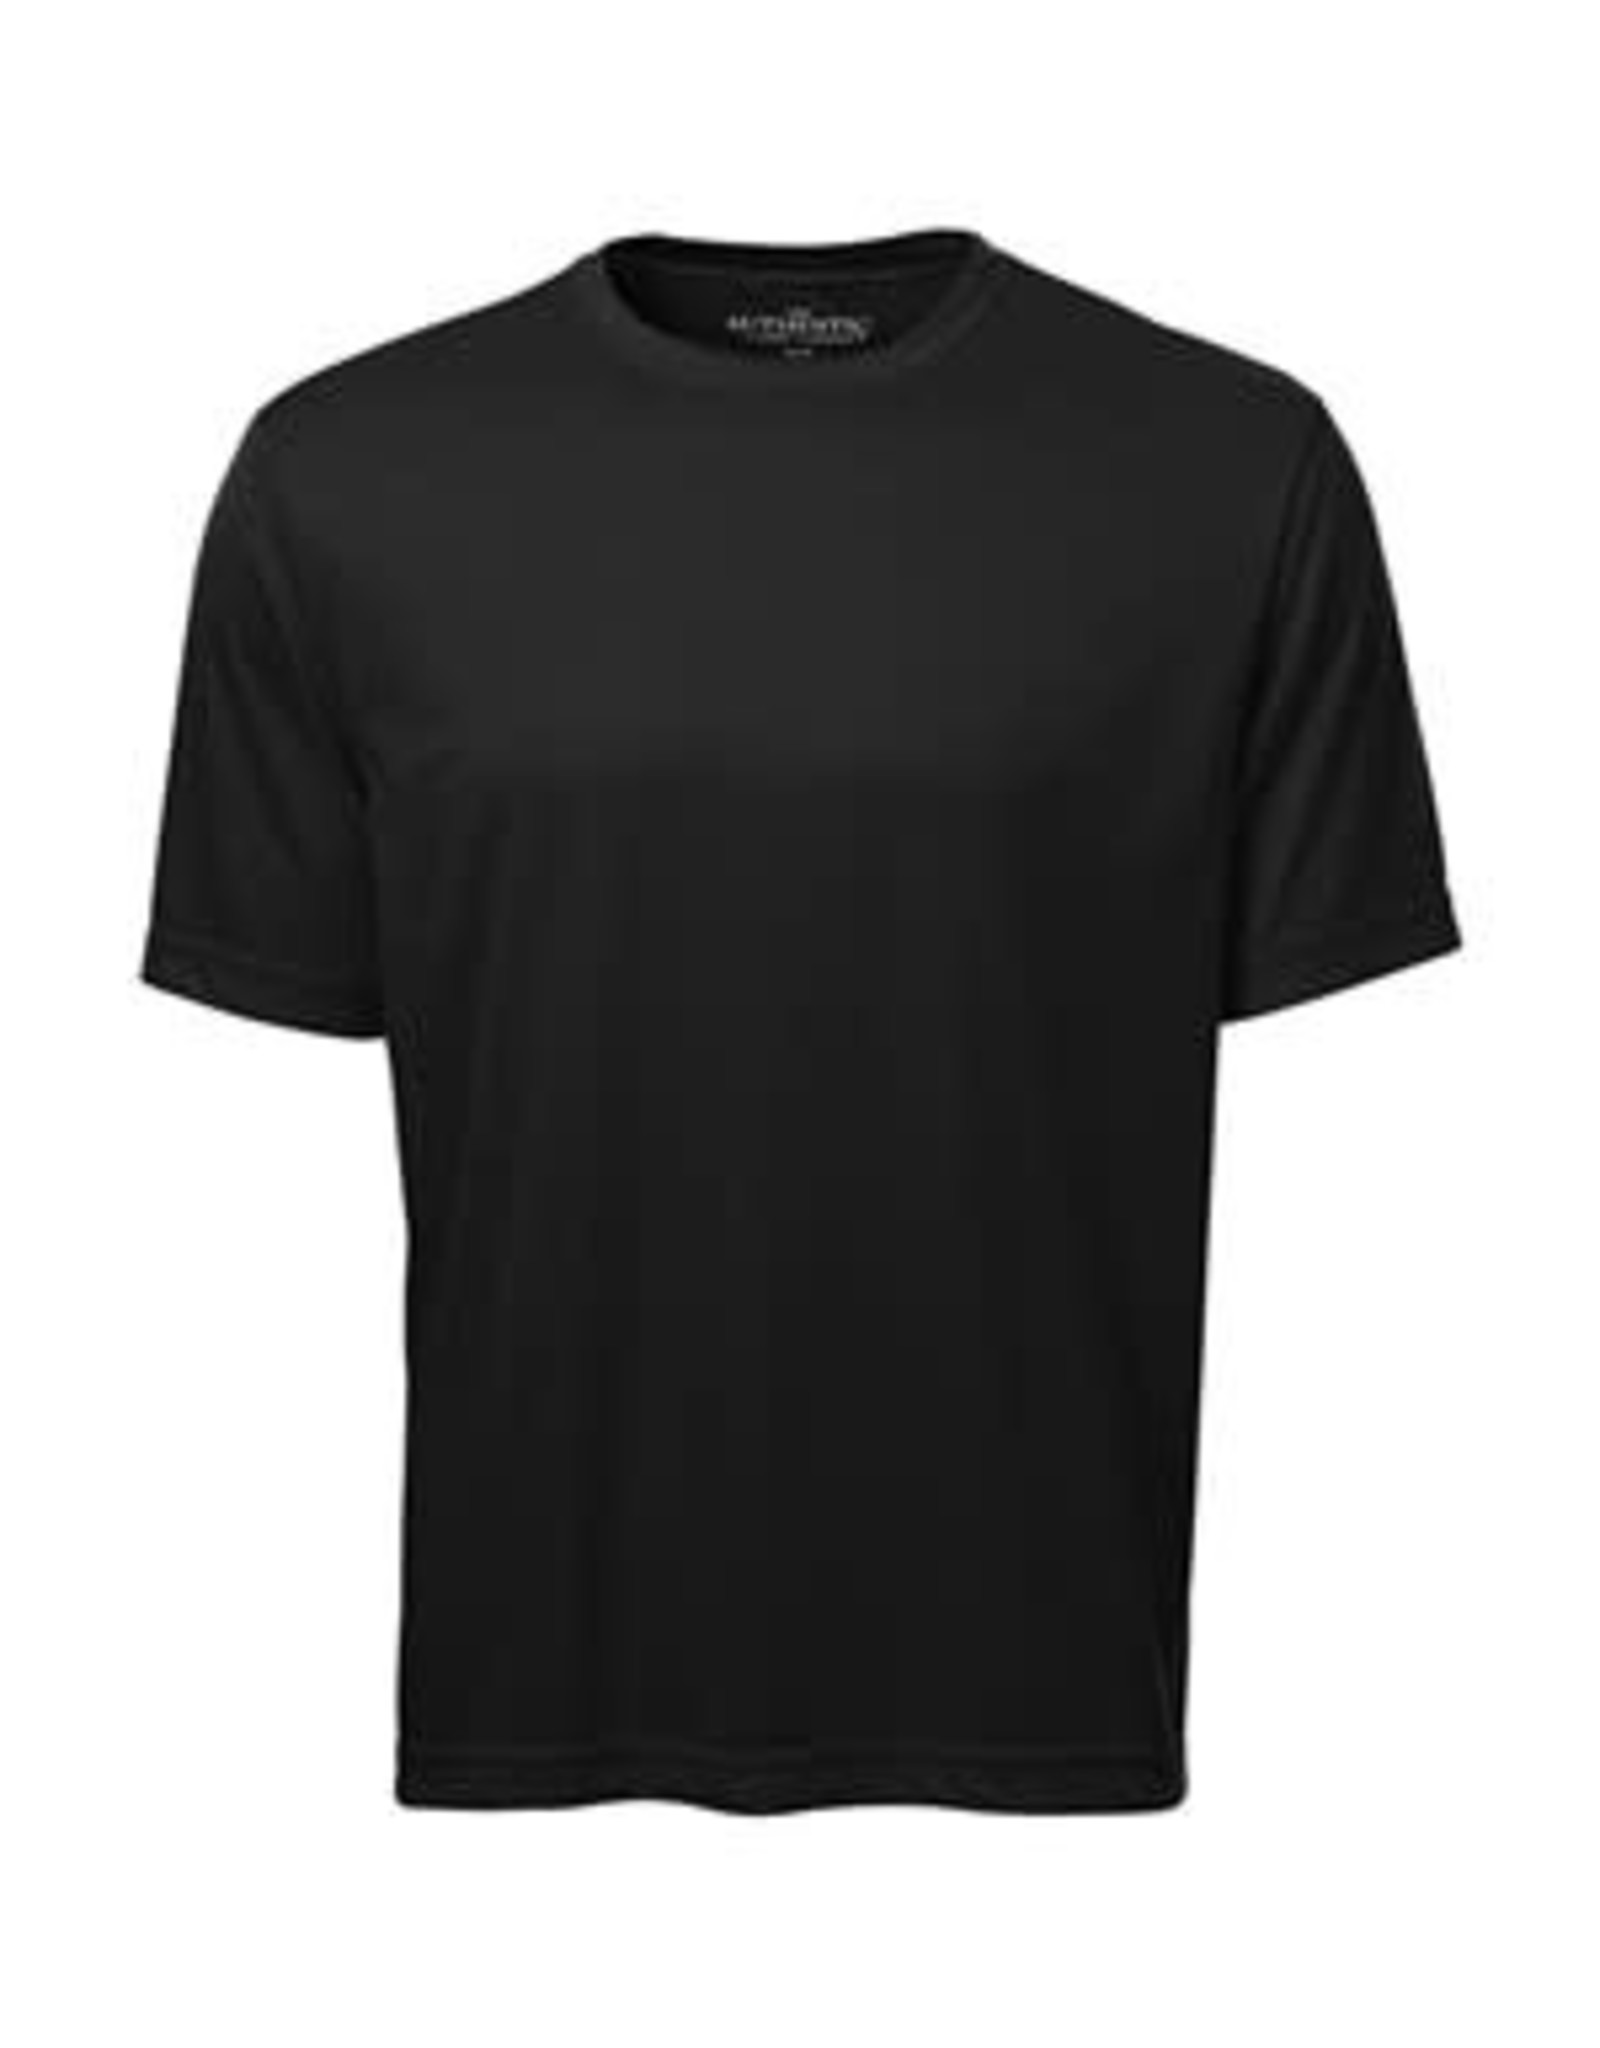 Adult Performance T-shirt - S350